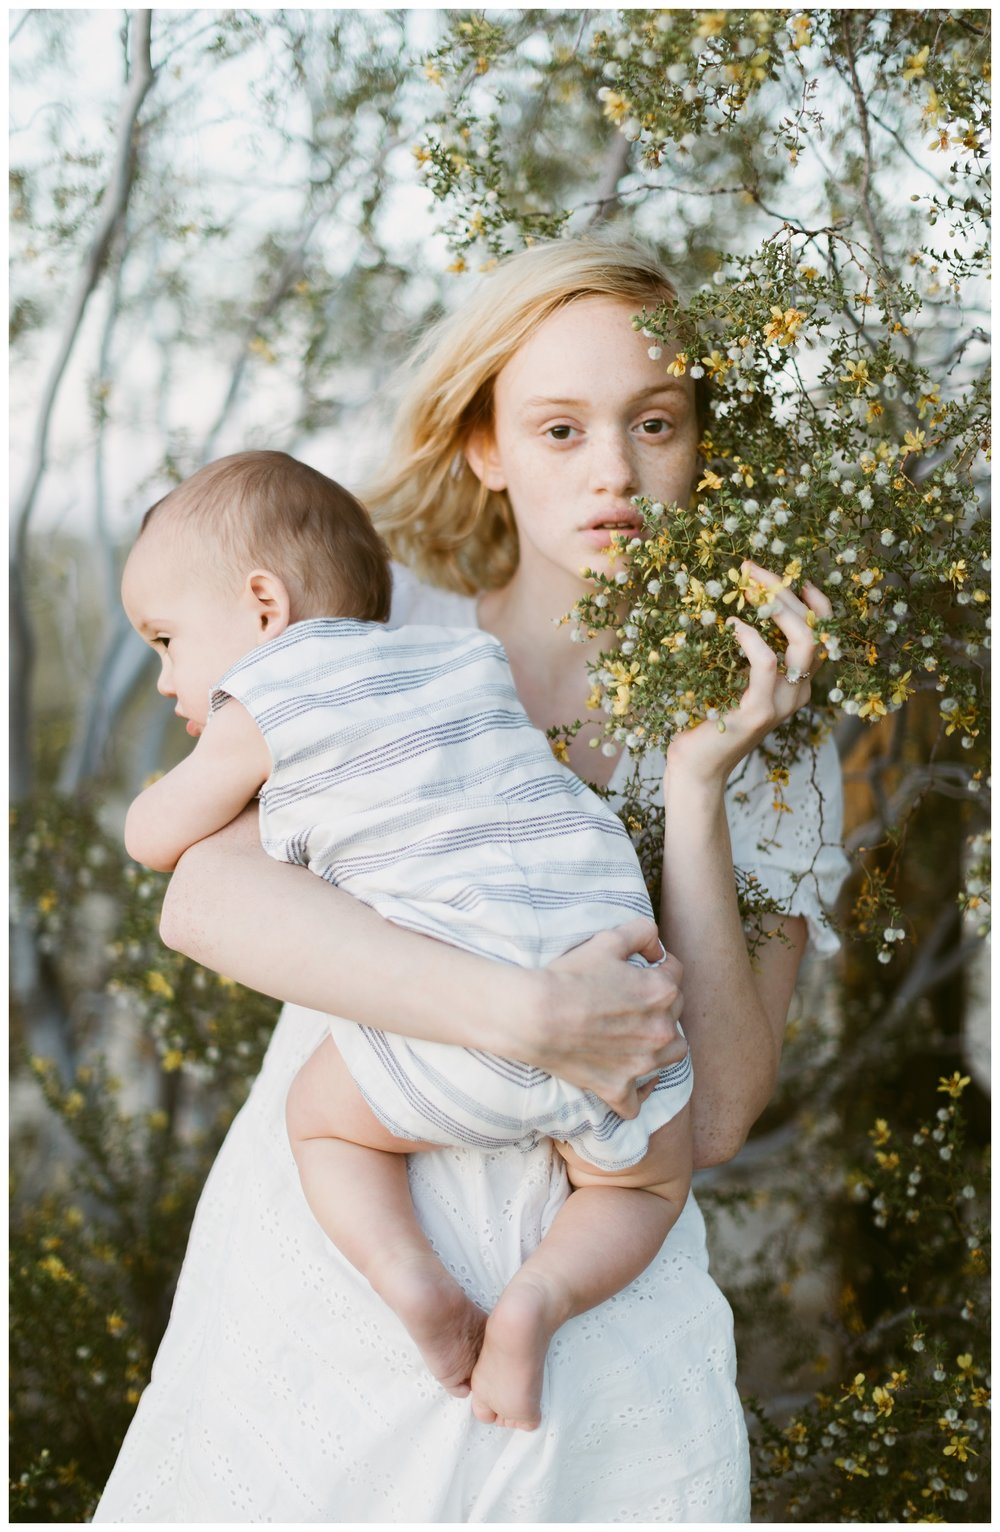 rhi-motherhood-joshua-tree (86 of 113).jpg